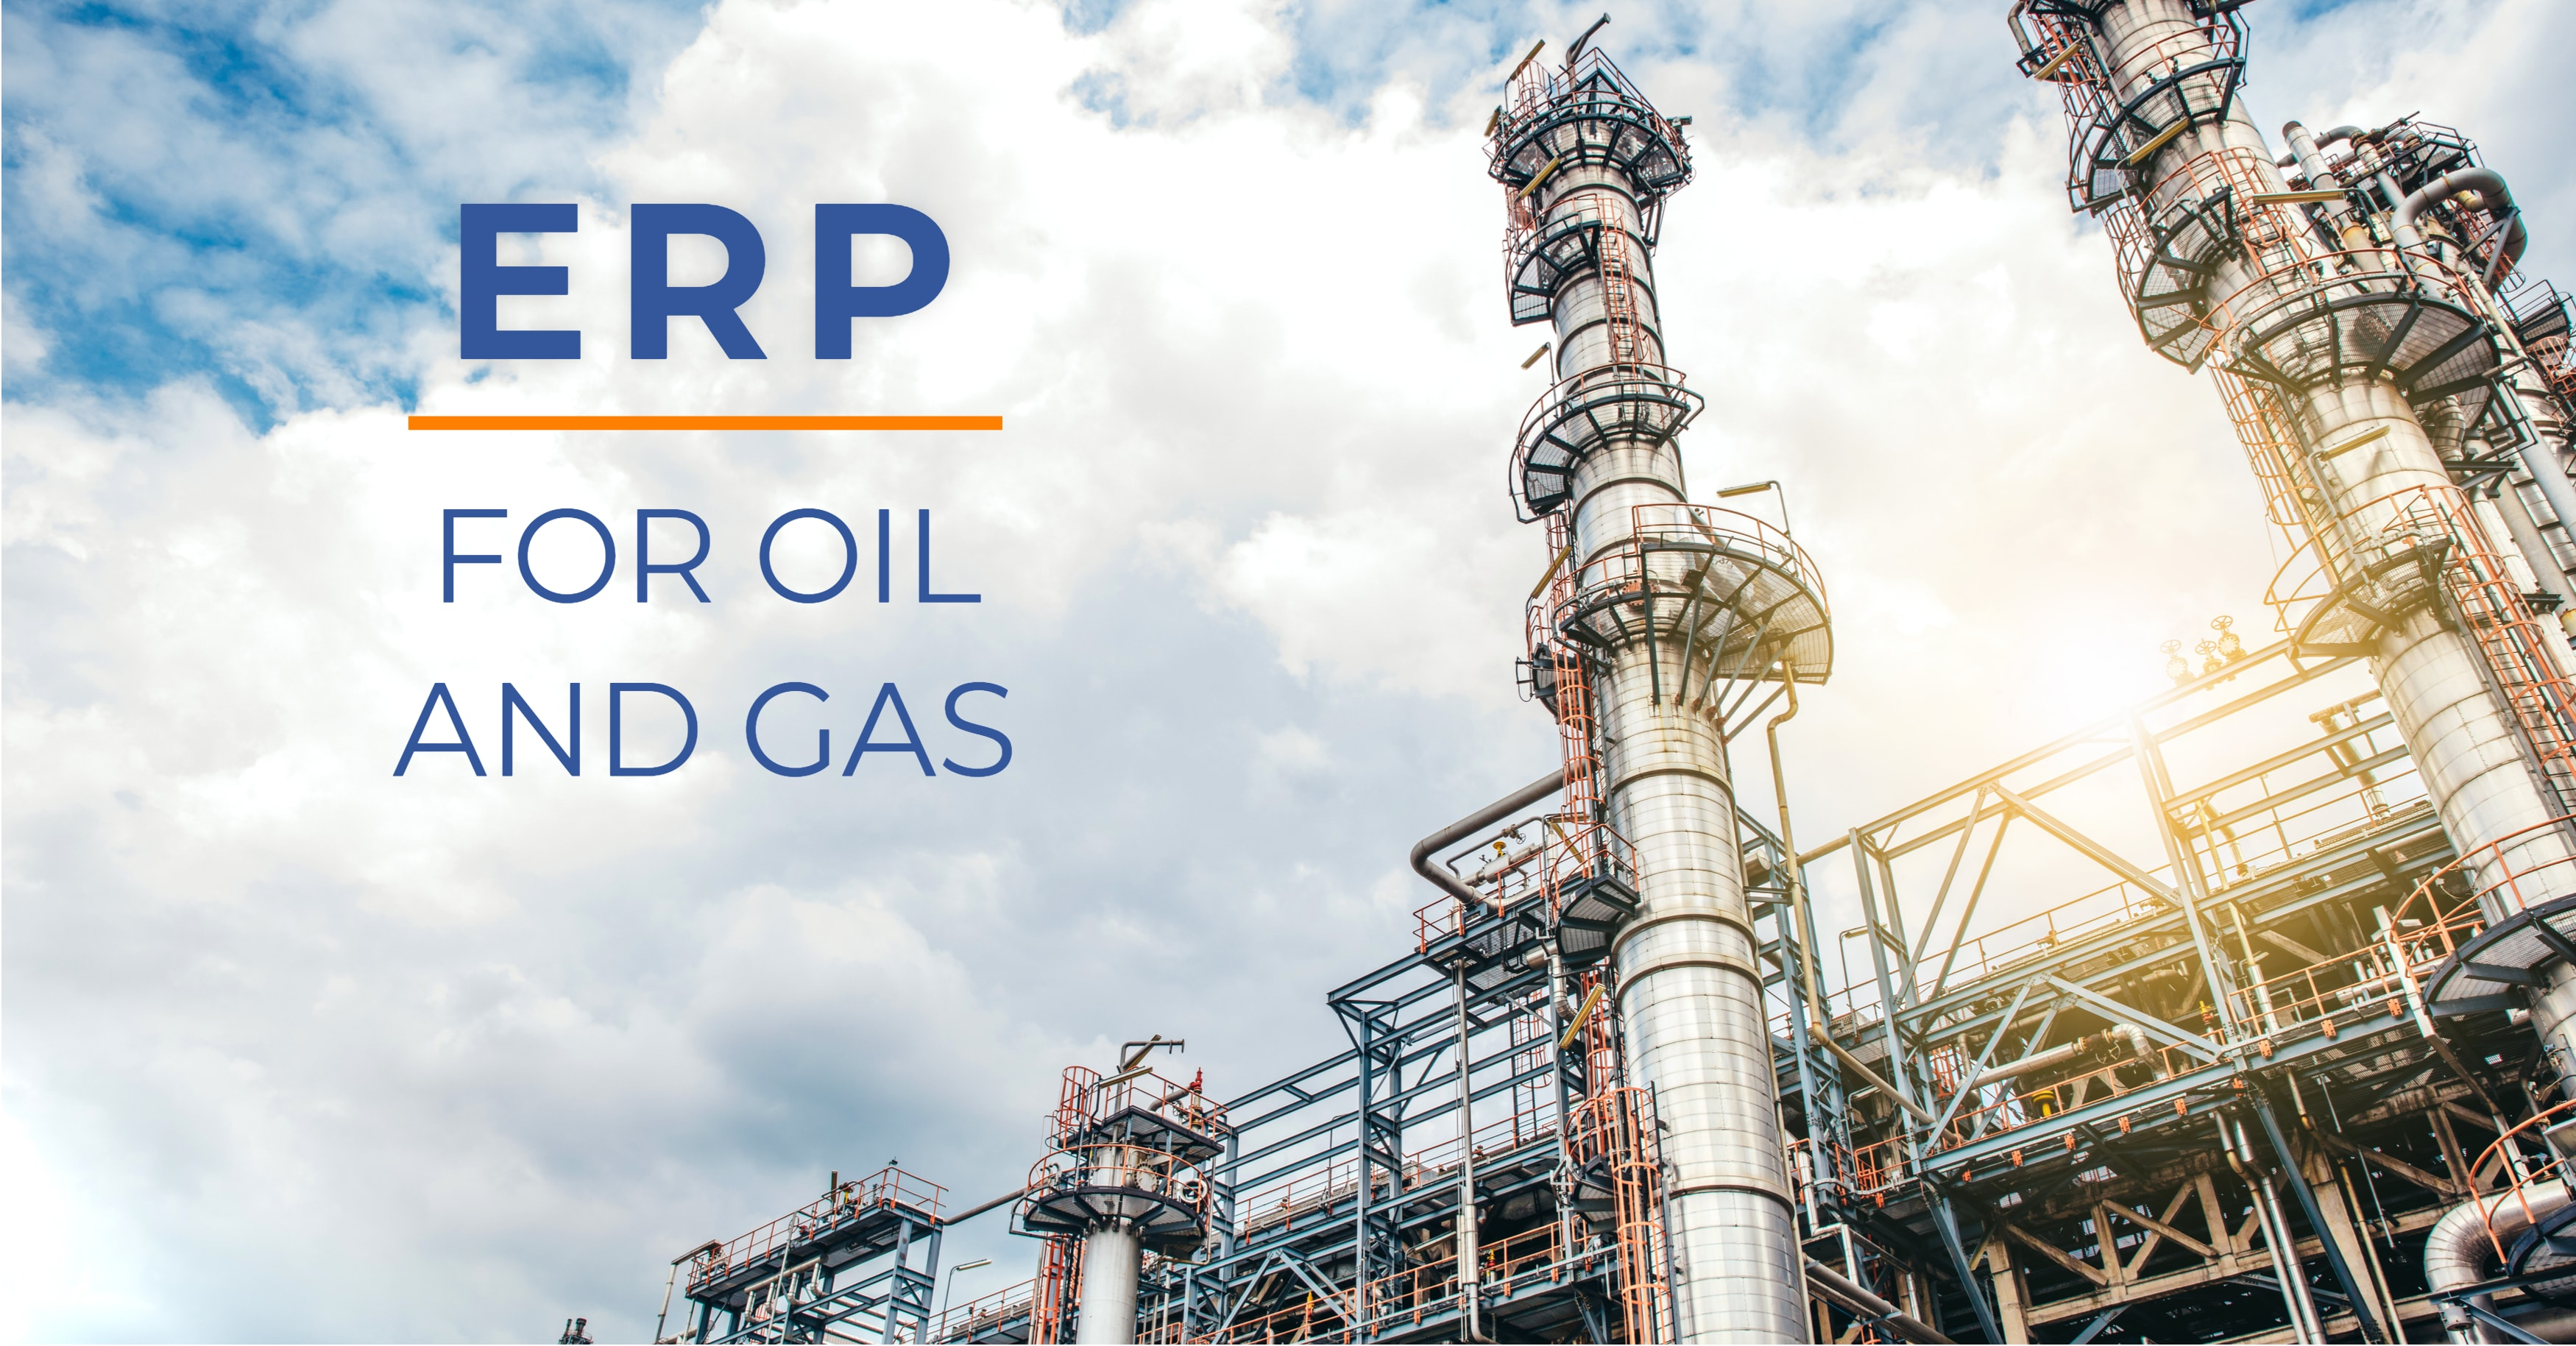 Selecting ERP for Oil and Gas Businesses